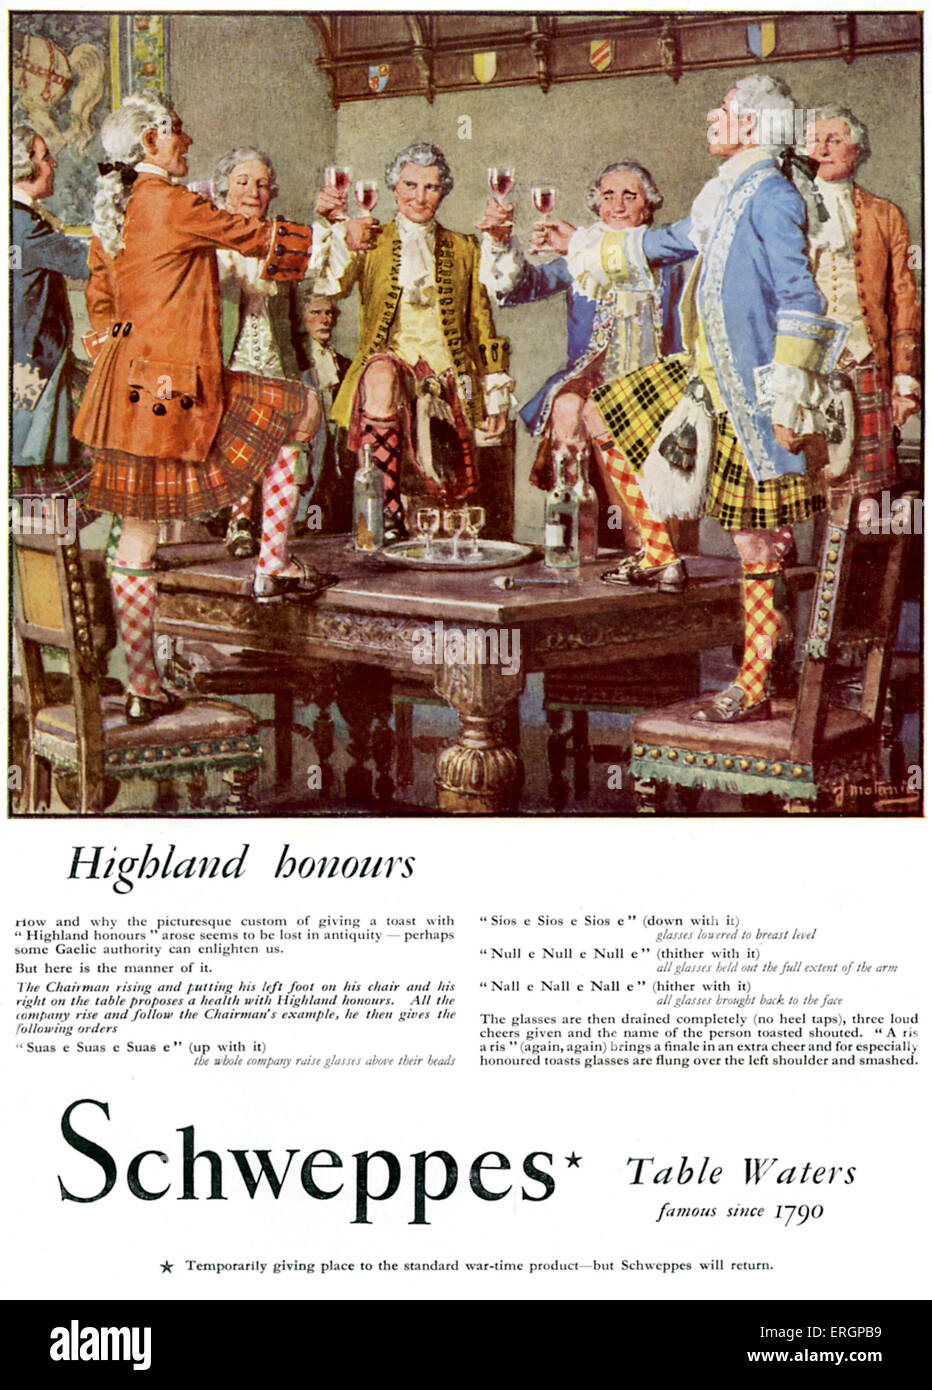 Schweppes advertisment. 'Highland honours' - Group of men in 18th century traditional Scottish dress giving - Stock Image